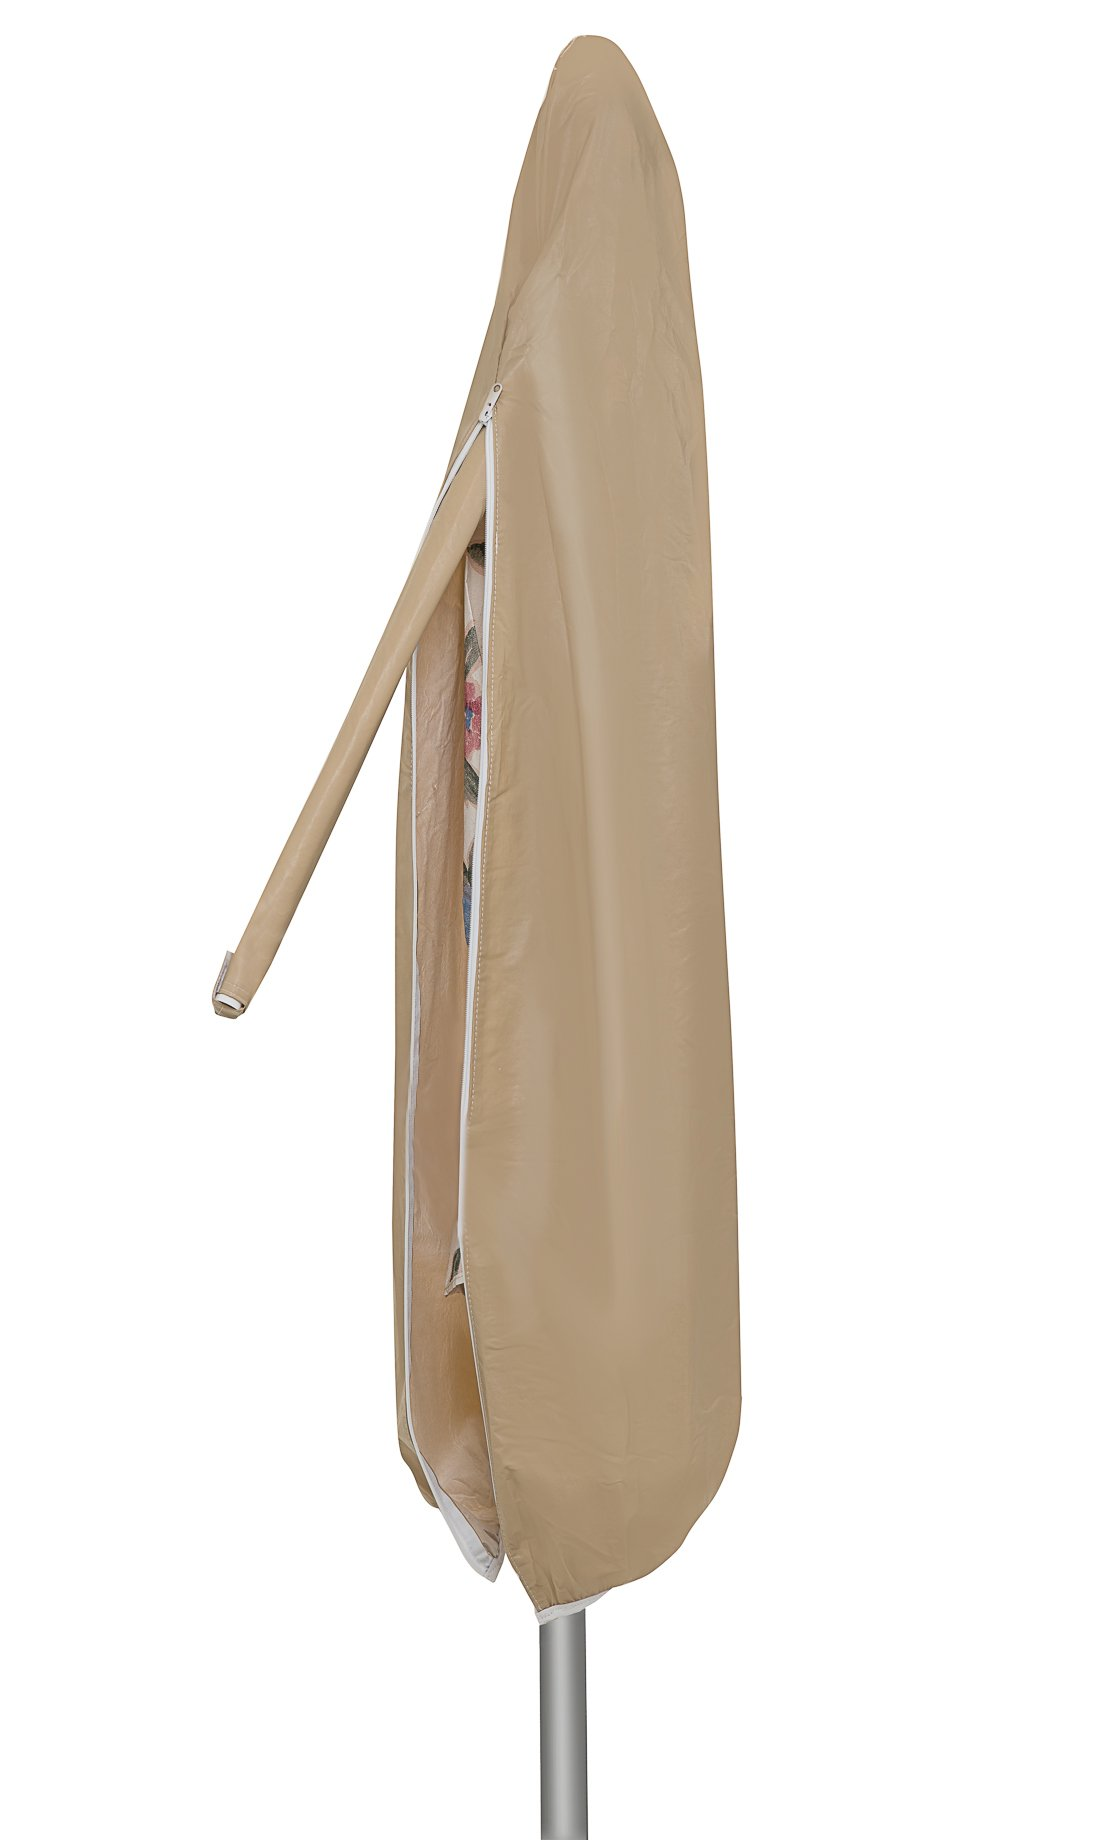 Protective Covers Weatherproof Umbrella Cover, 6 x 8 Feet, Tan